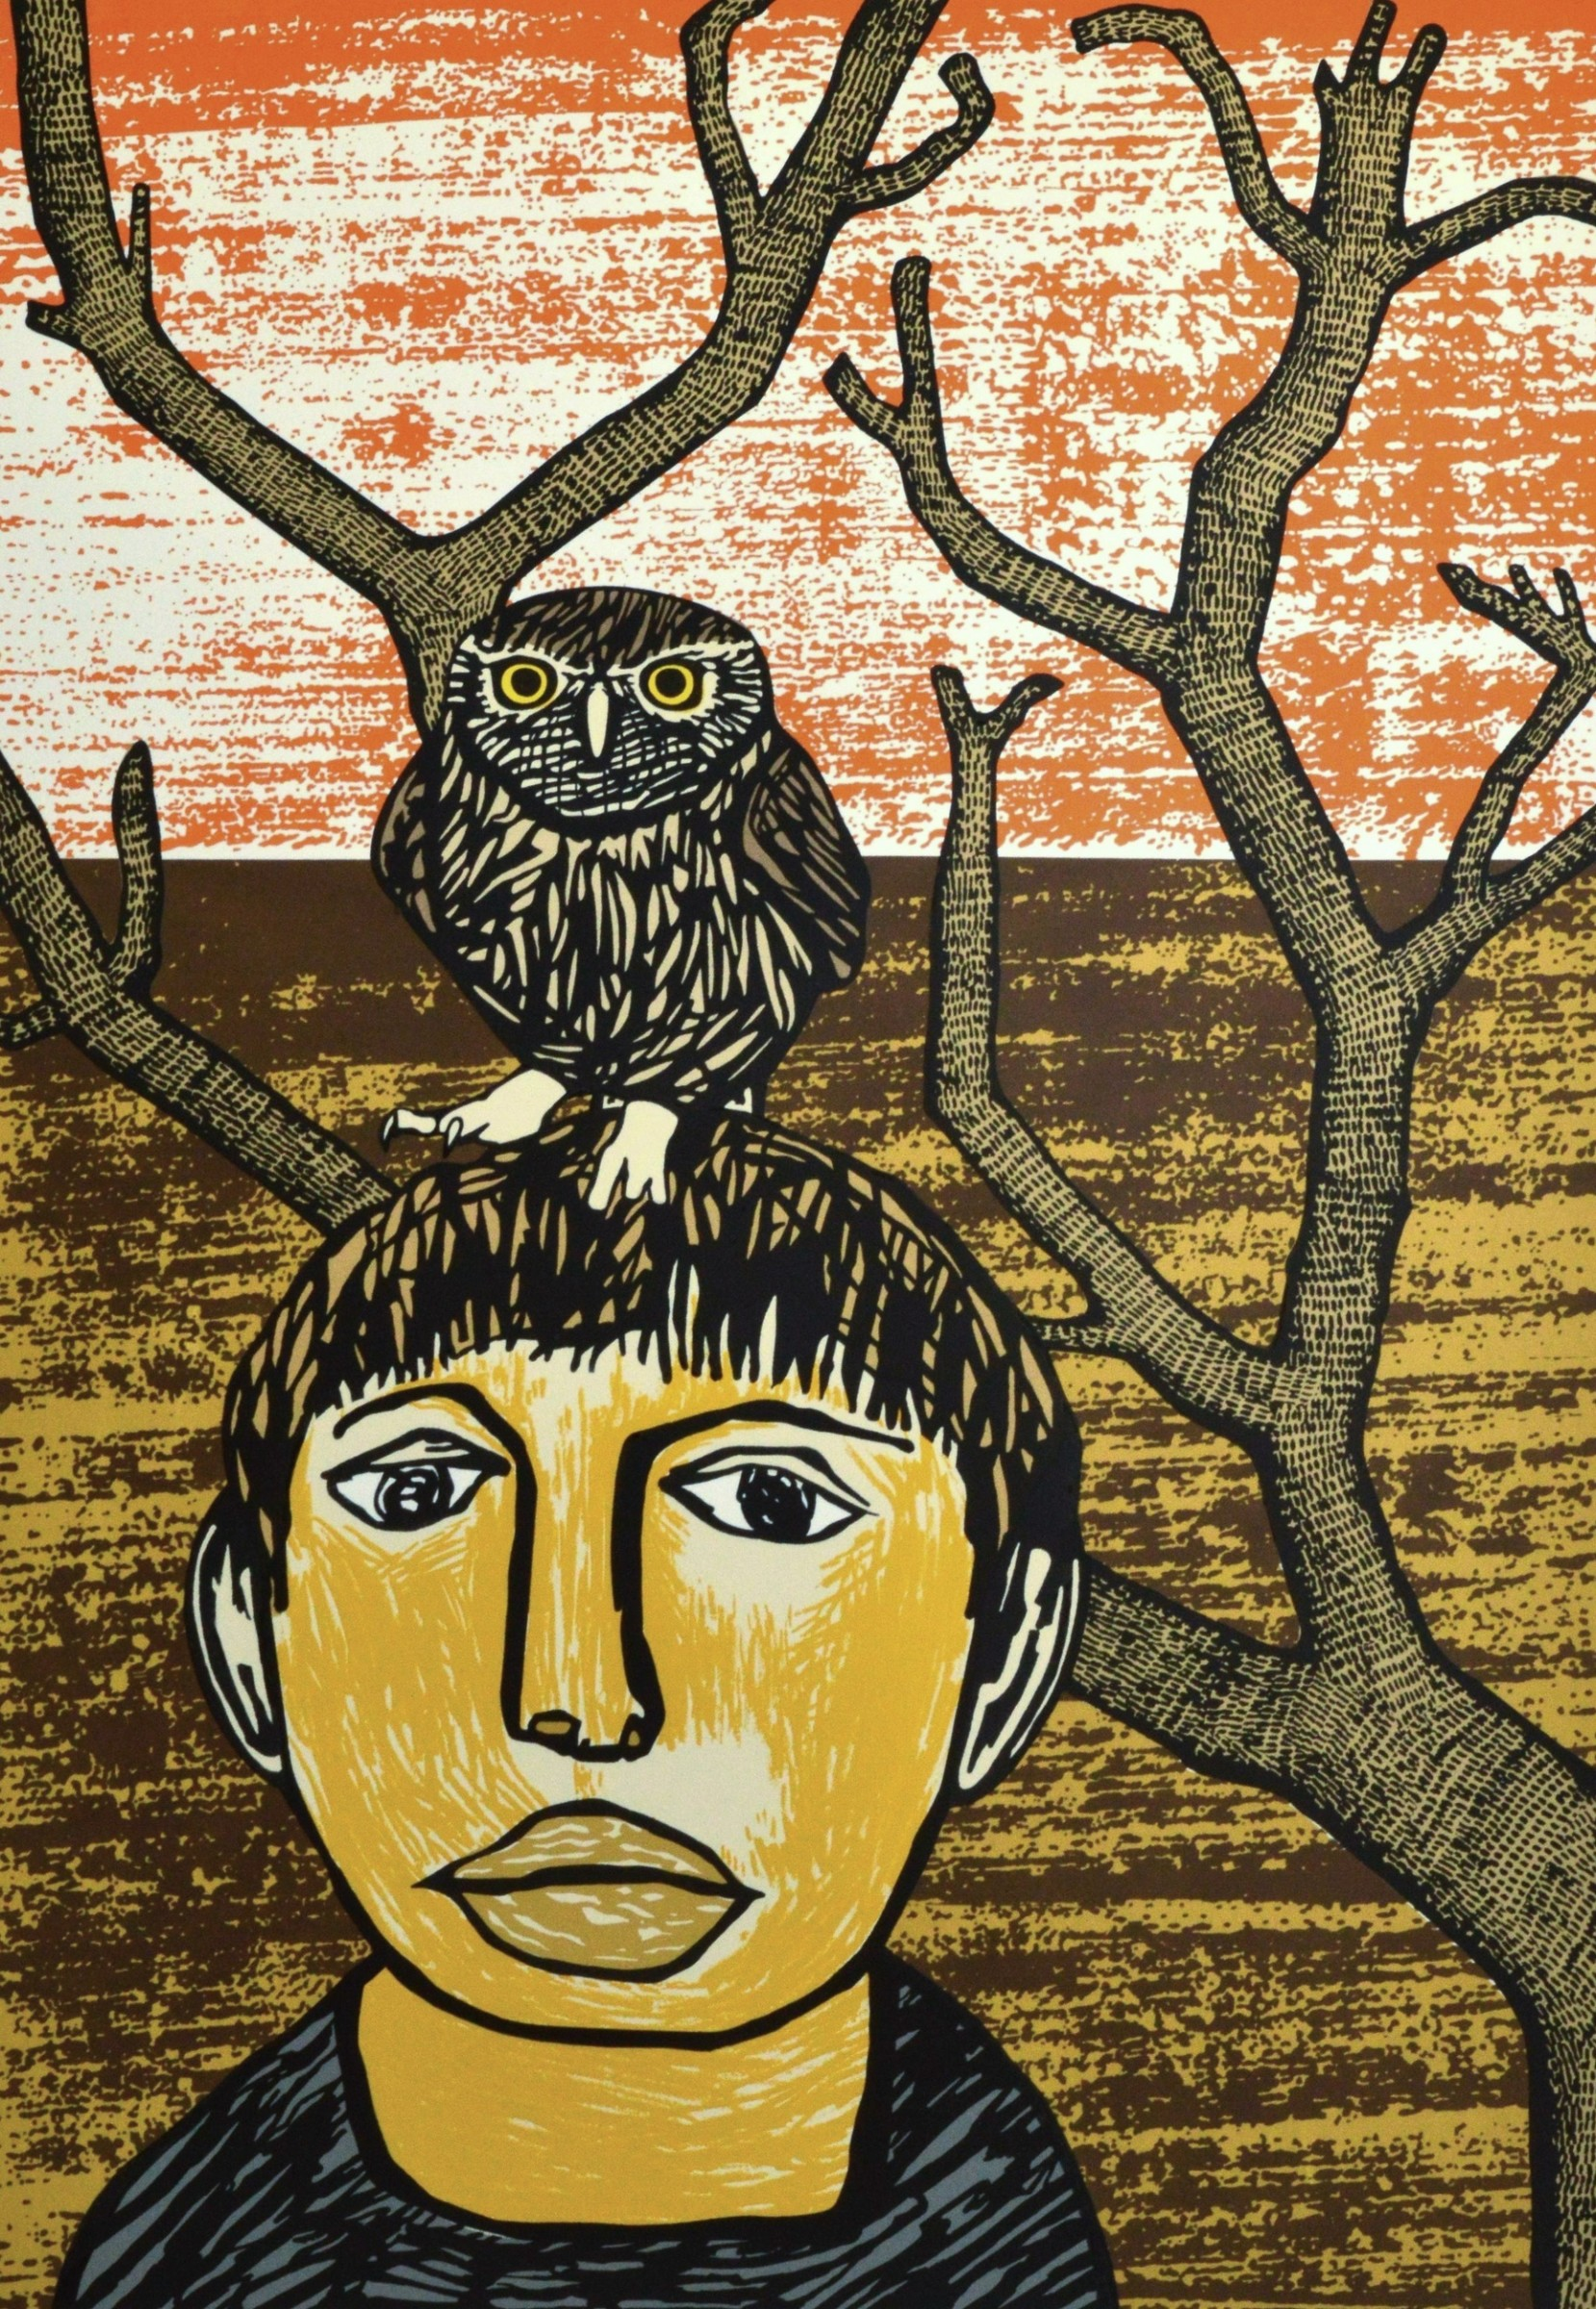 """<span class=""""link fancybox-details-link""""><a href=""""/exhibitions/17/works/image_standalone709/"""">View Detail Page</a></span><p><strong>Paul Hogg</strong></p><p>Owl Boy (Once upon a time in the Midlands, 3 miles from the edge of town)</p><p>screenprint, ed of 25</p><p>70 x 50cm</p><p>£400 framed</p><p>£300 unframed</p>"""